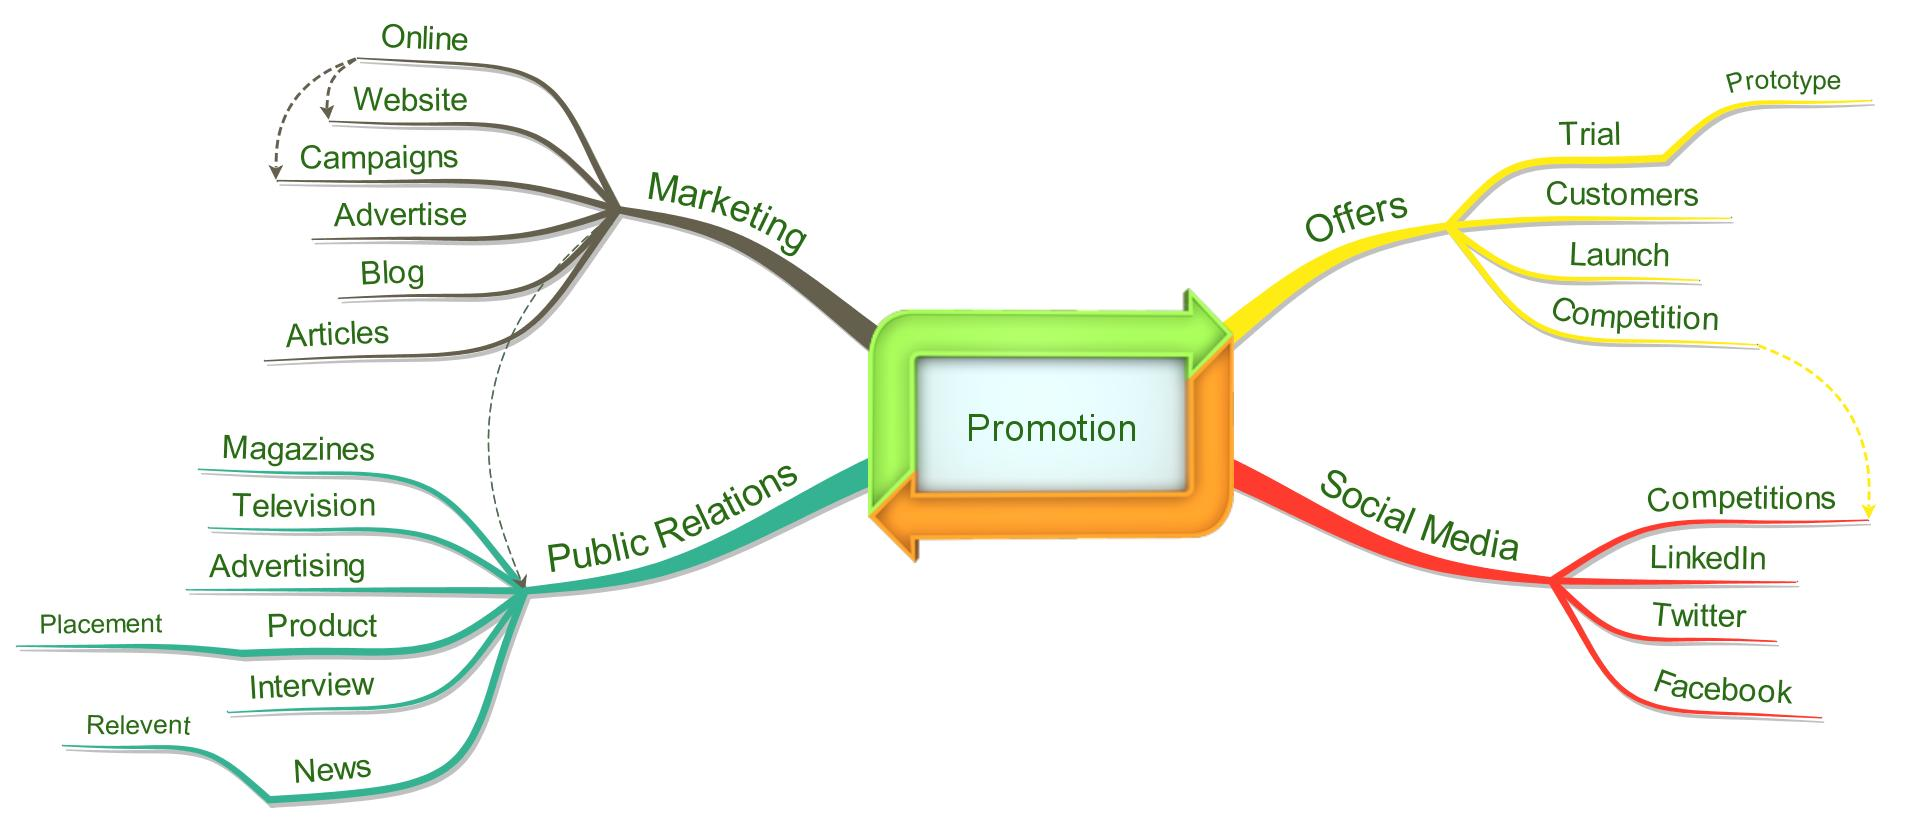 9 tips for creating a winning product plan using Mind Maps ...